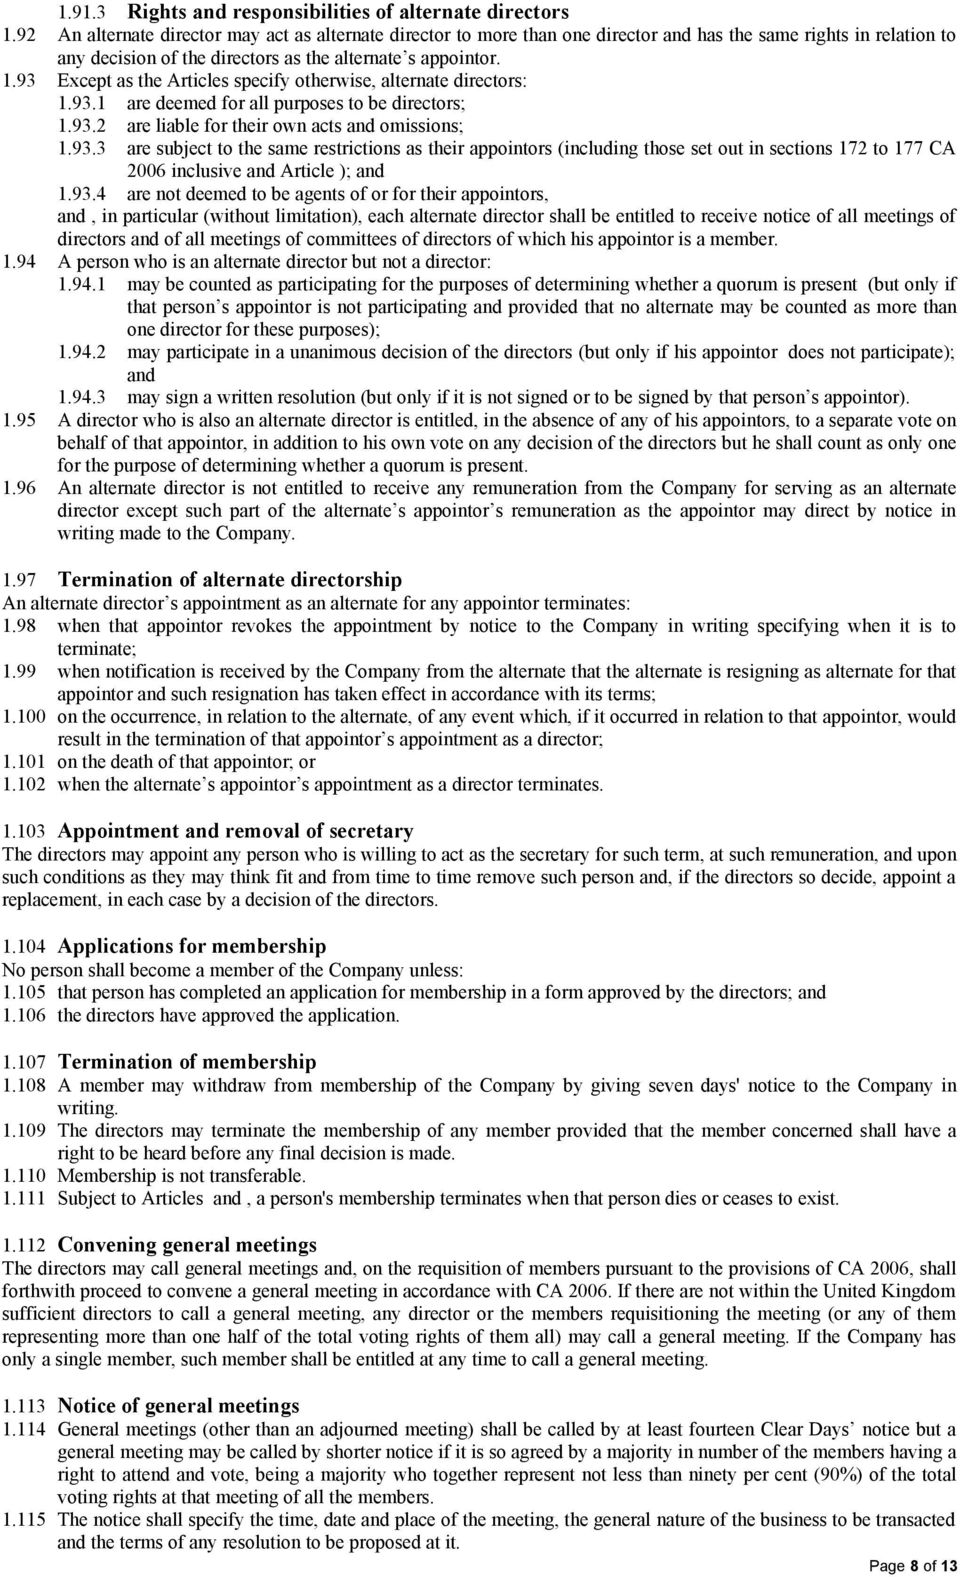 93 Except as the Articles specify otherwise, alternate directors: 1.93.1 are deemed for all purposes to be directors; 1.93.2 are liable for their own acts and omissions; 1.93.3 are subject to the same restrictions as their appointors (including those set out in sections 172 to 177 CA 2006 inclusive and Article ); and 1.